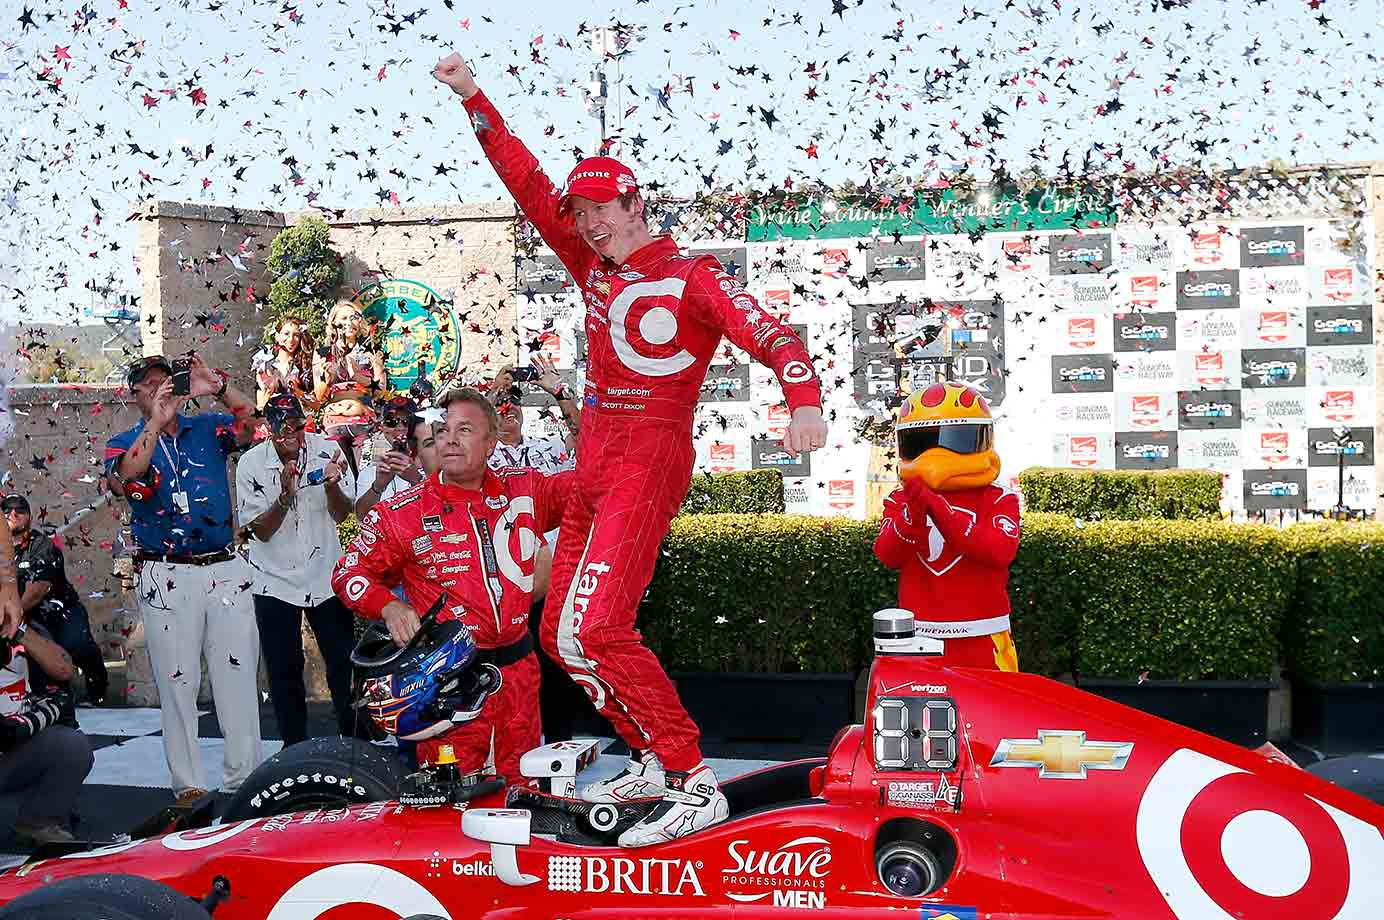 Yet again Ganassi's ranking Kiwi proved that slow and steady is the best way to win. All season he stalked points leader Juan Pablo Montoya. At the IndyCar finale at Sonoma he made his move, rallying from ninth to the checkered flag. In the process he netted a double points bonus (which put him even with Montoya atop the leaderboard) and a third win (enough for a tiebreaker). The come-from-behind win gave Dixon with his fourth series crown. It also was a cathartic ending for IndyCar after the jolting on-track death of veteran driver Justin Wilson just a week earlier.